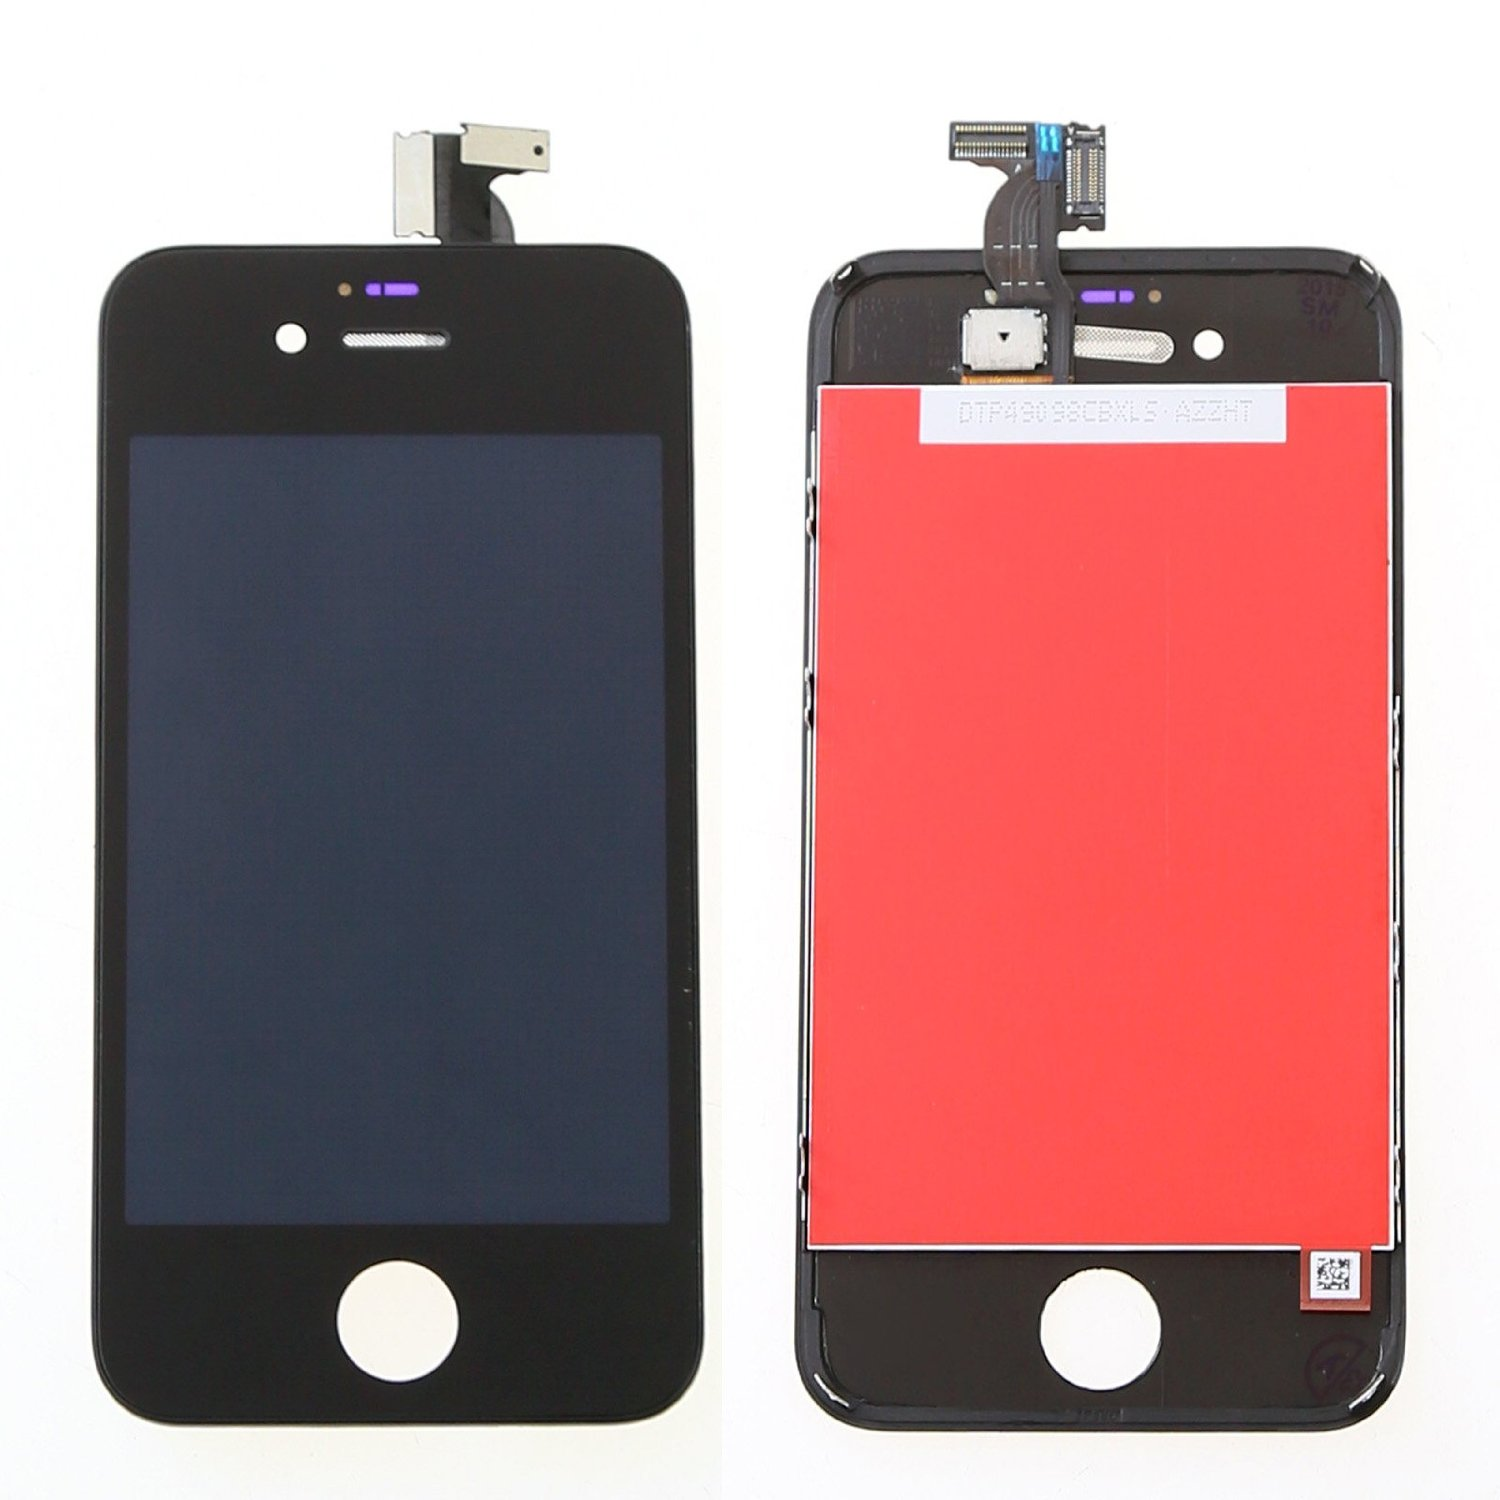 iphone 4s screen replacement start here for iphone 4s screen replacement info amp tips 14451